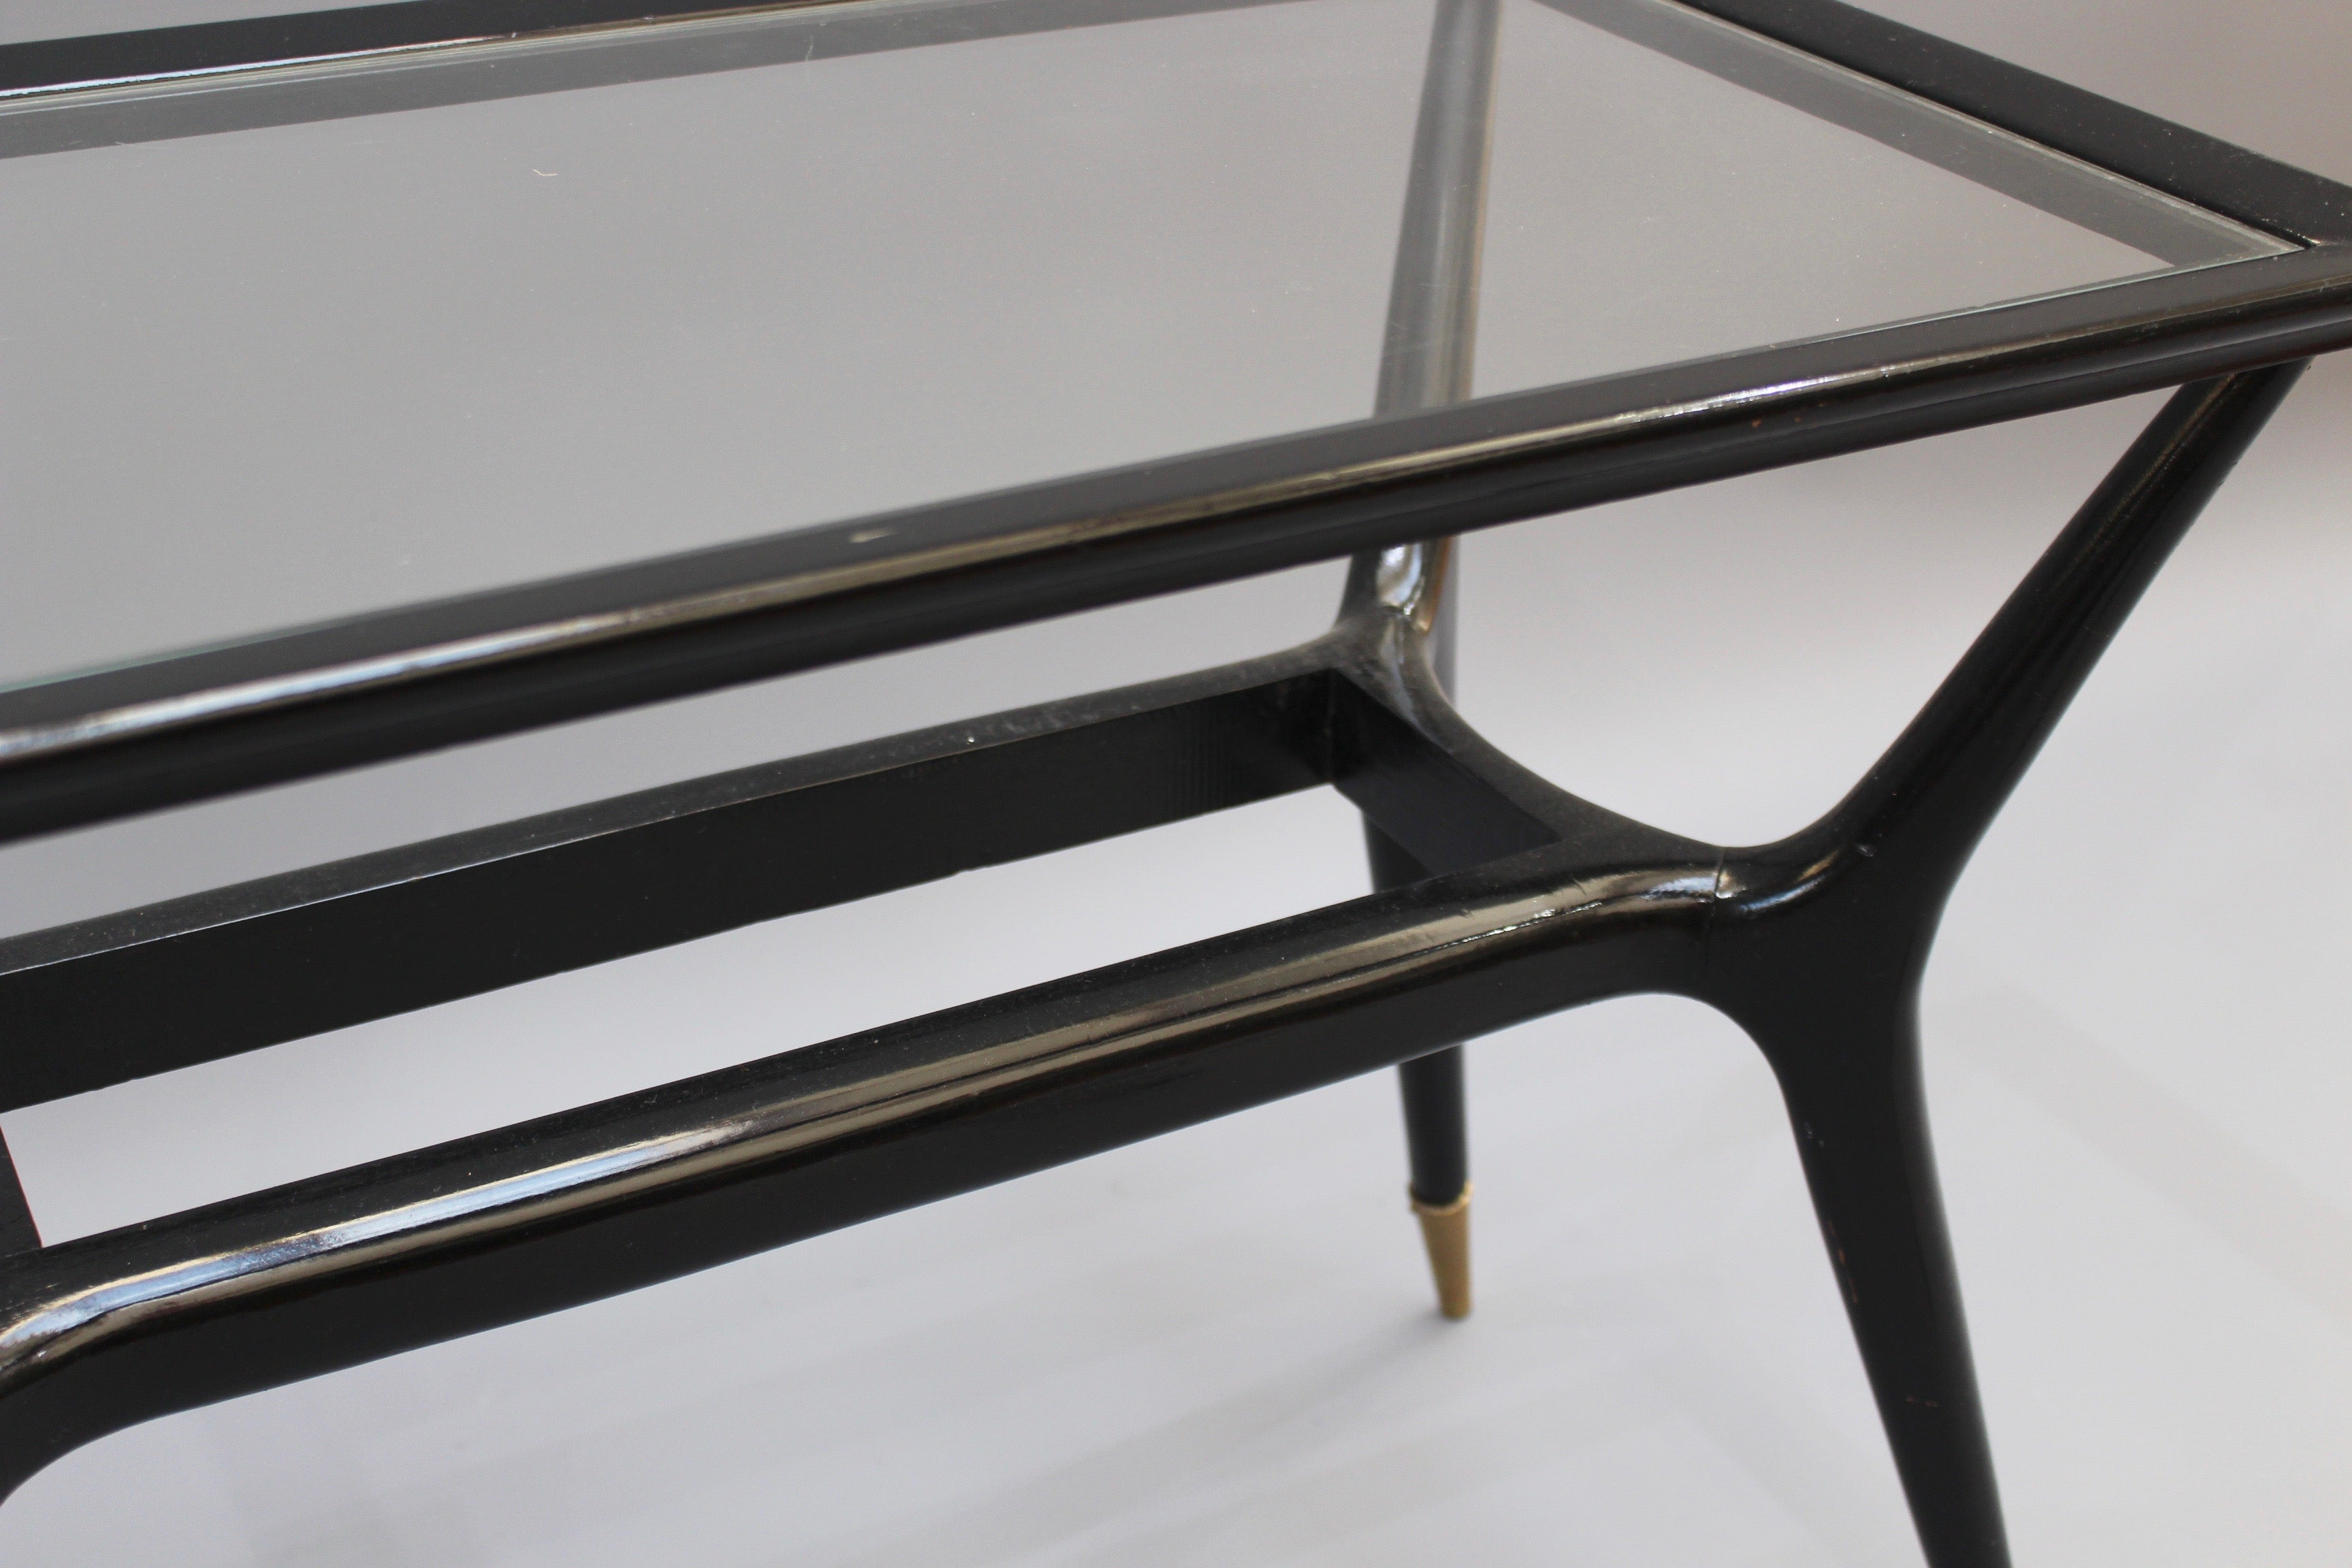 Black Lacquered Coffee / Side Table Attributed to Ico Parisi (circa 1950s)